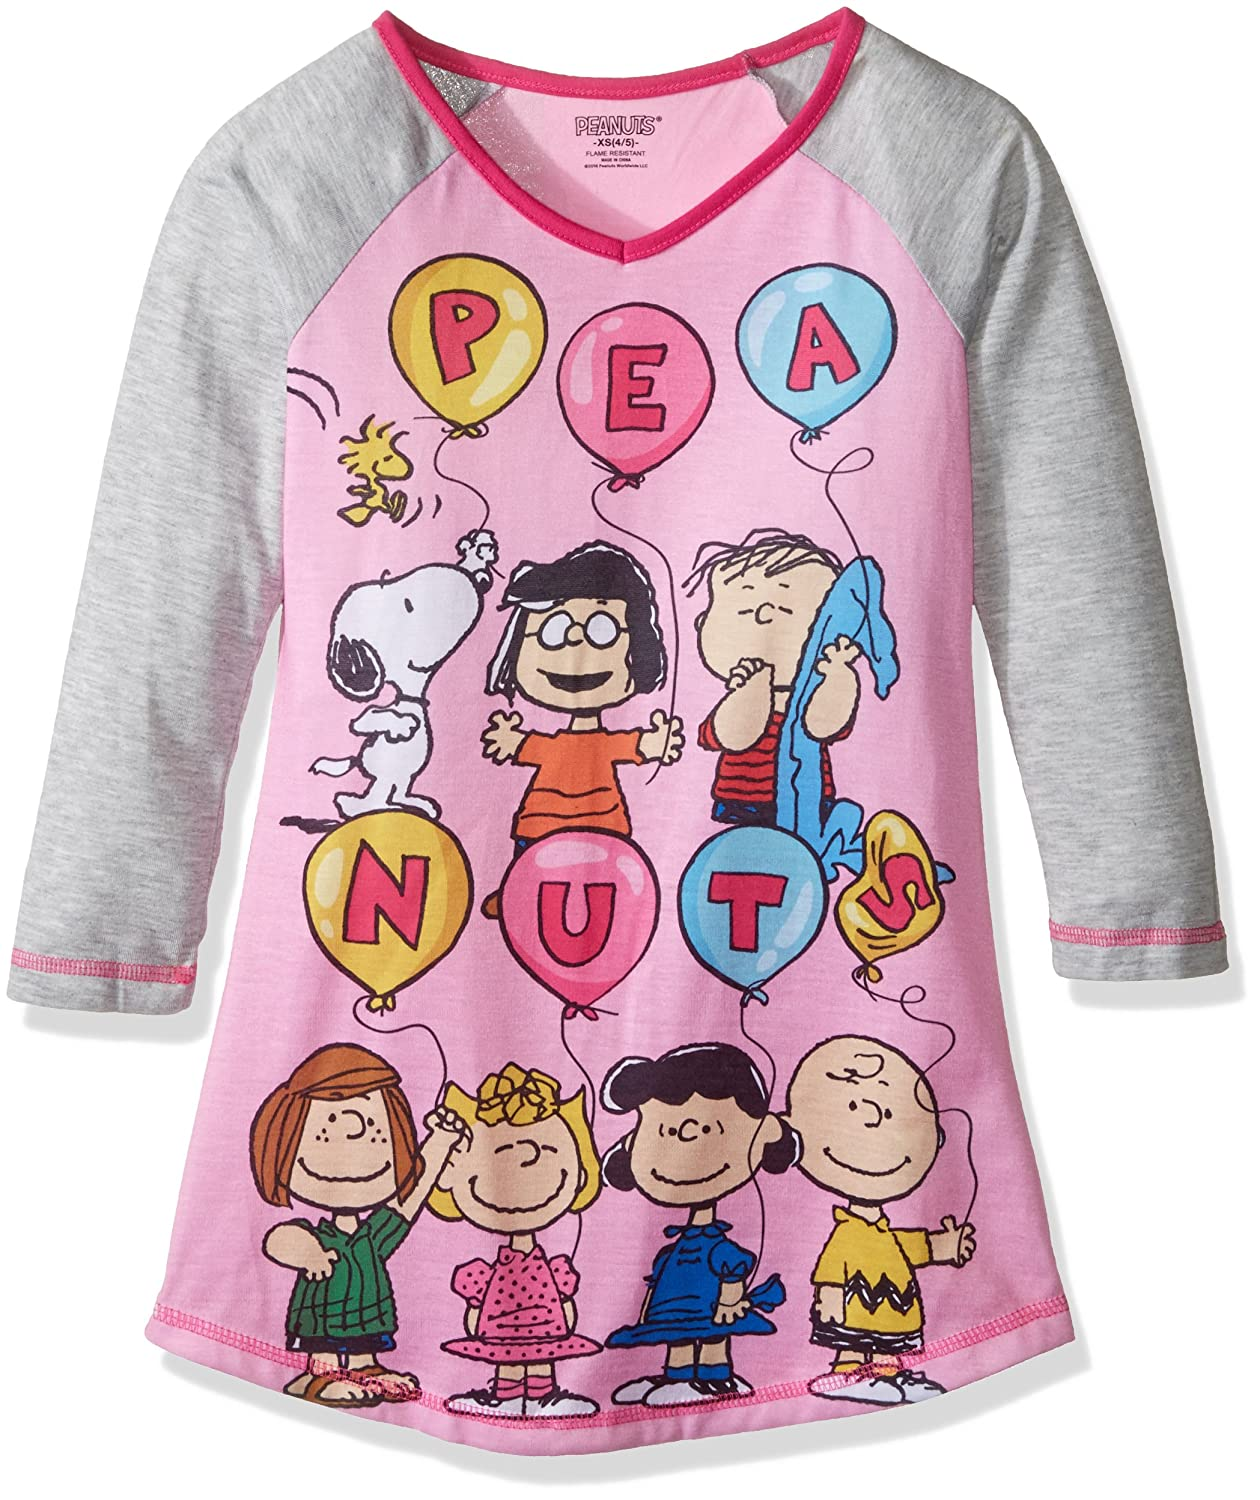 Peanuts Girls All Characters Sleepwear Gown